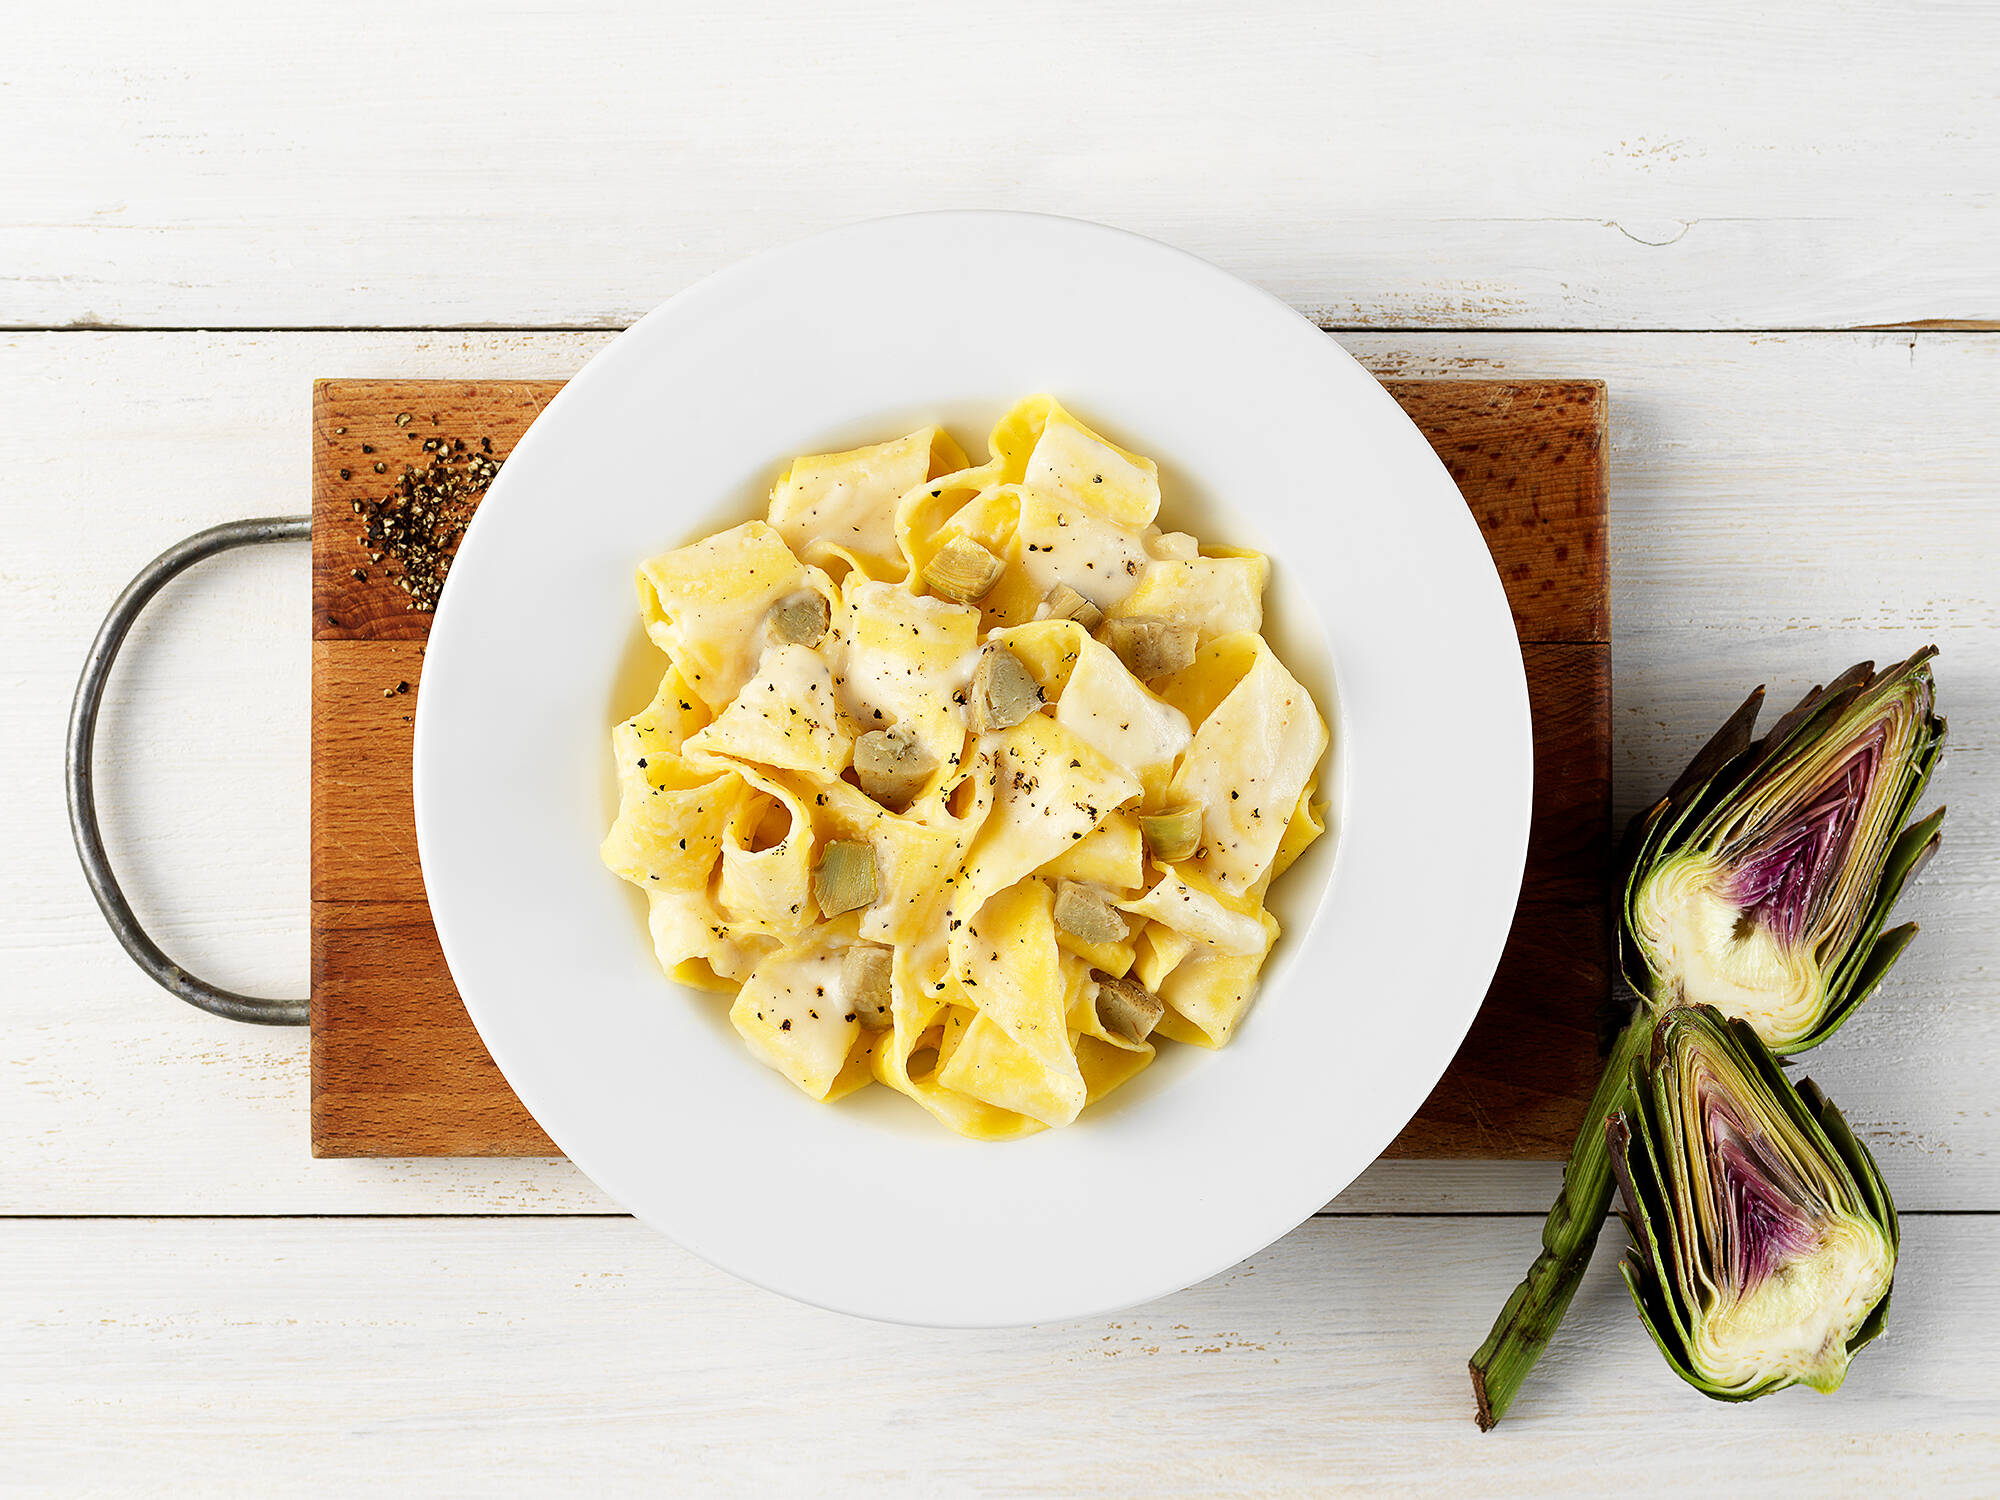 Pappardelle surgelate